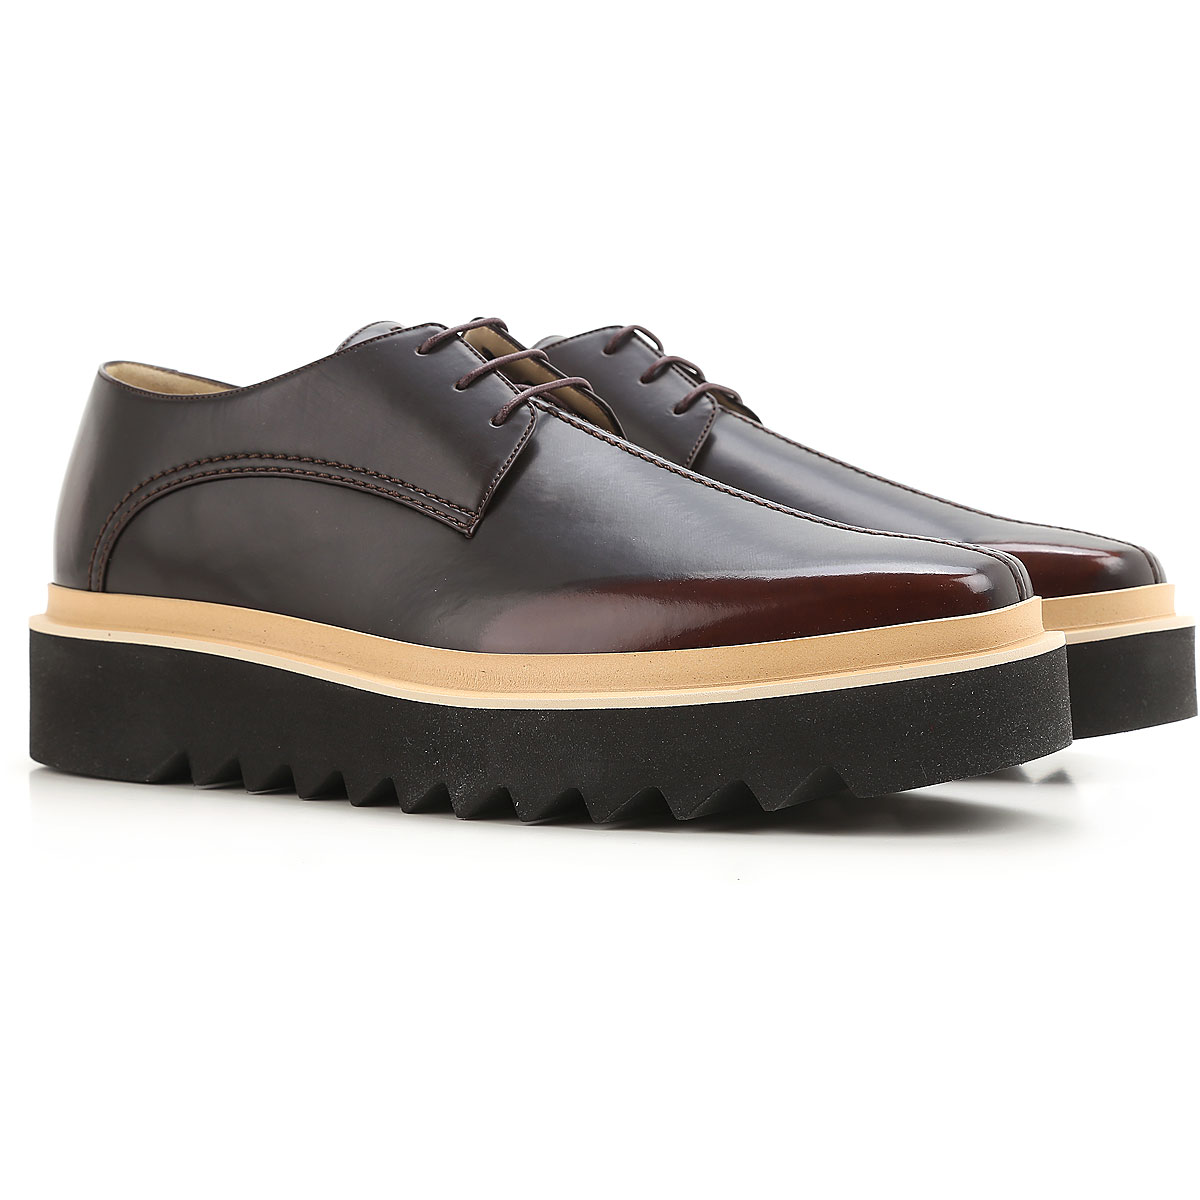 Stella McCartney Lace Up Shoes for Men Oxfords, Derbies and Brogues On Sale in Outlet, Ebony, Leather, 2017, 6.75 7 7.5 8 8.5 9.25 9.5